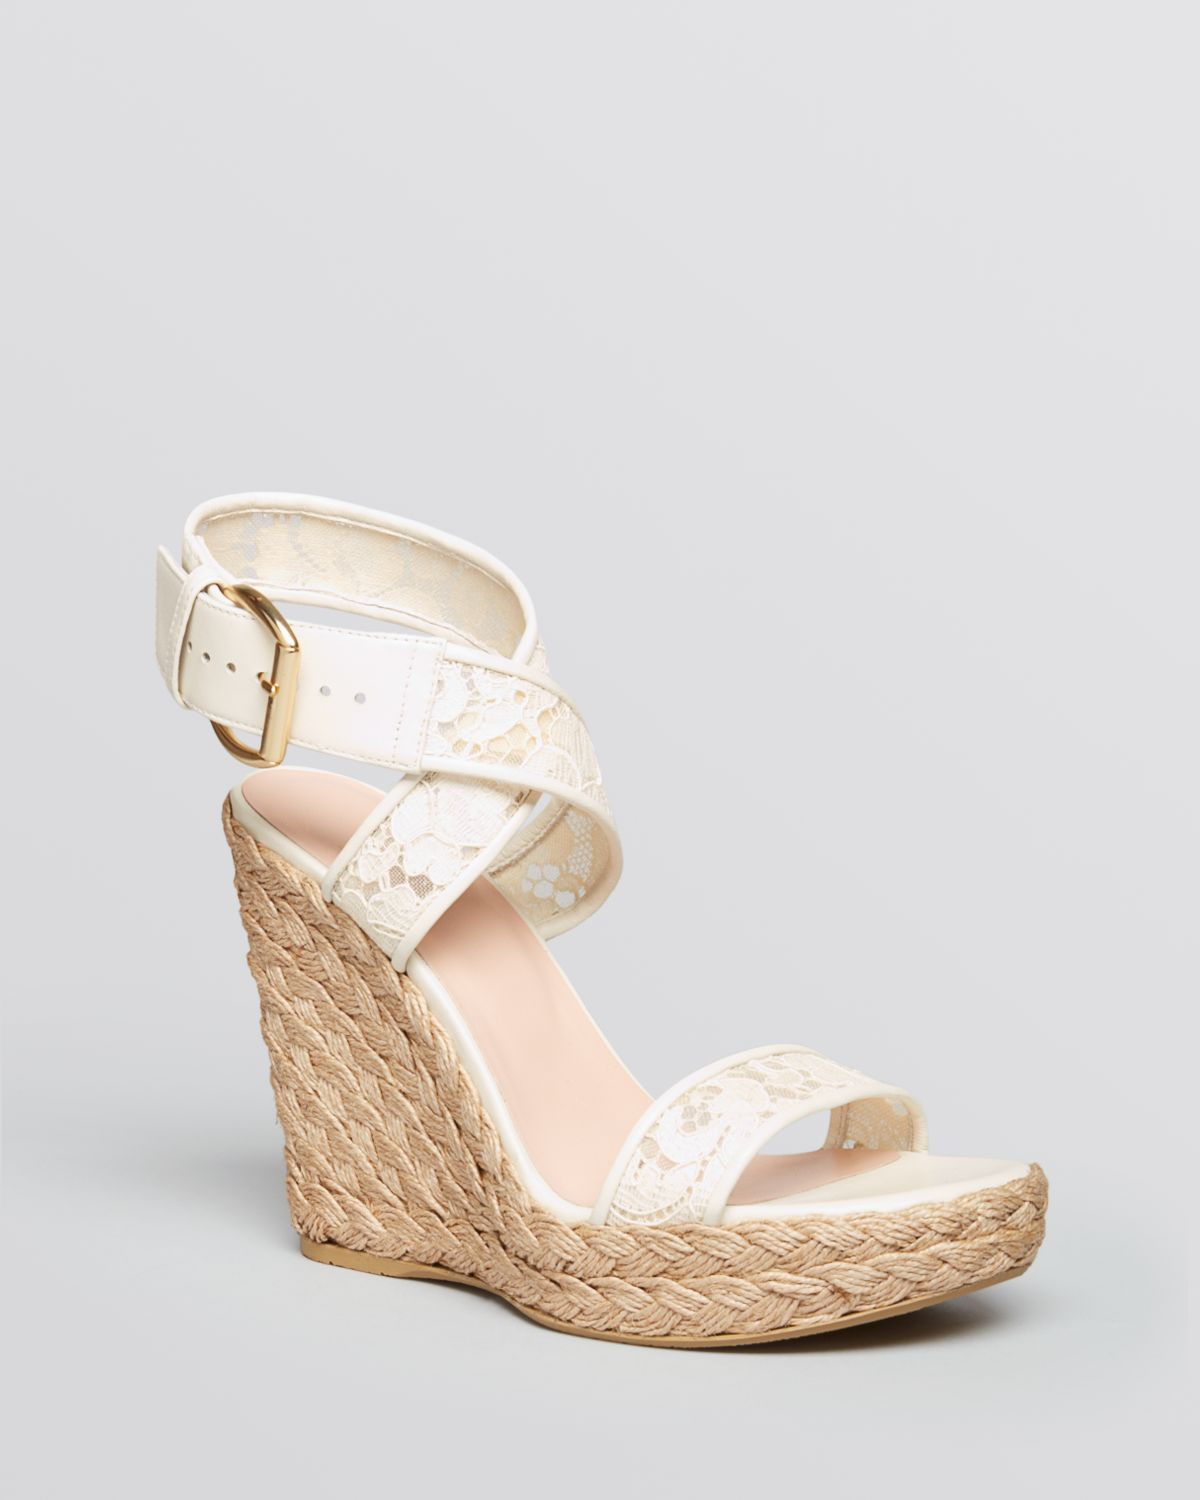 Stuart Weitzman Guipure Wedge Sandals